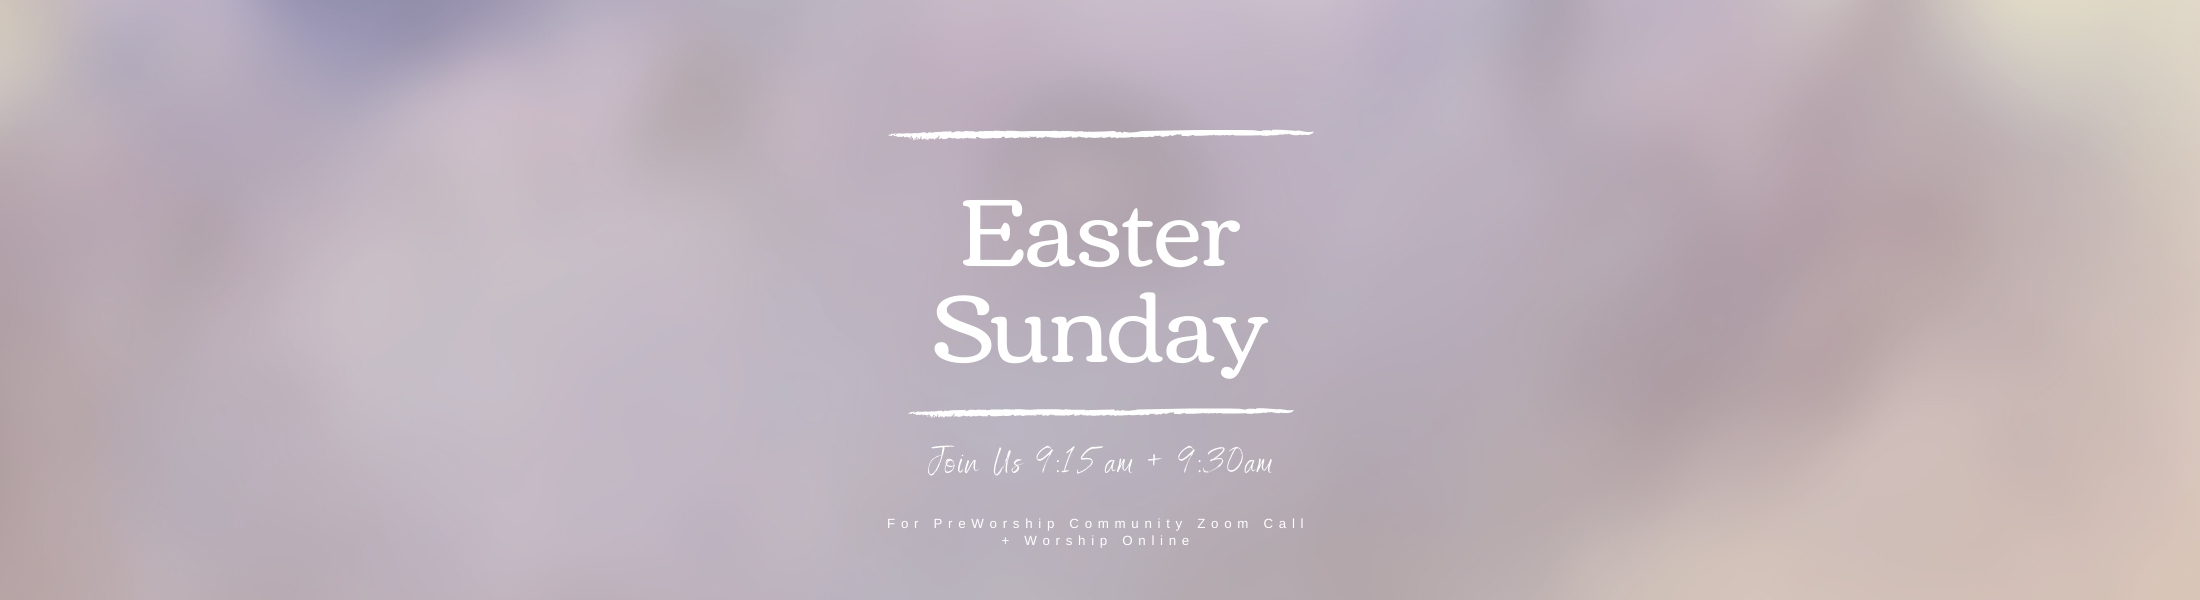 Join Us April 12th 9:15 + 9:30am For Easter Sunday Worship